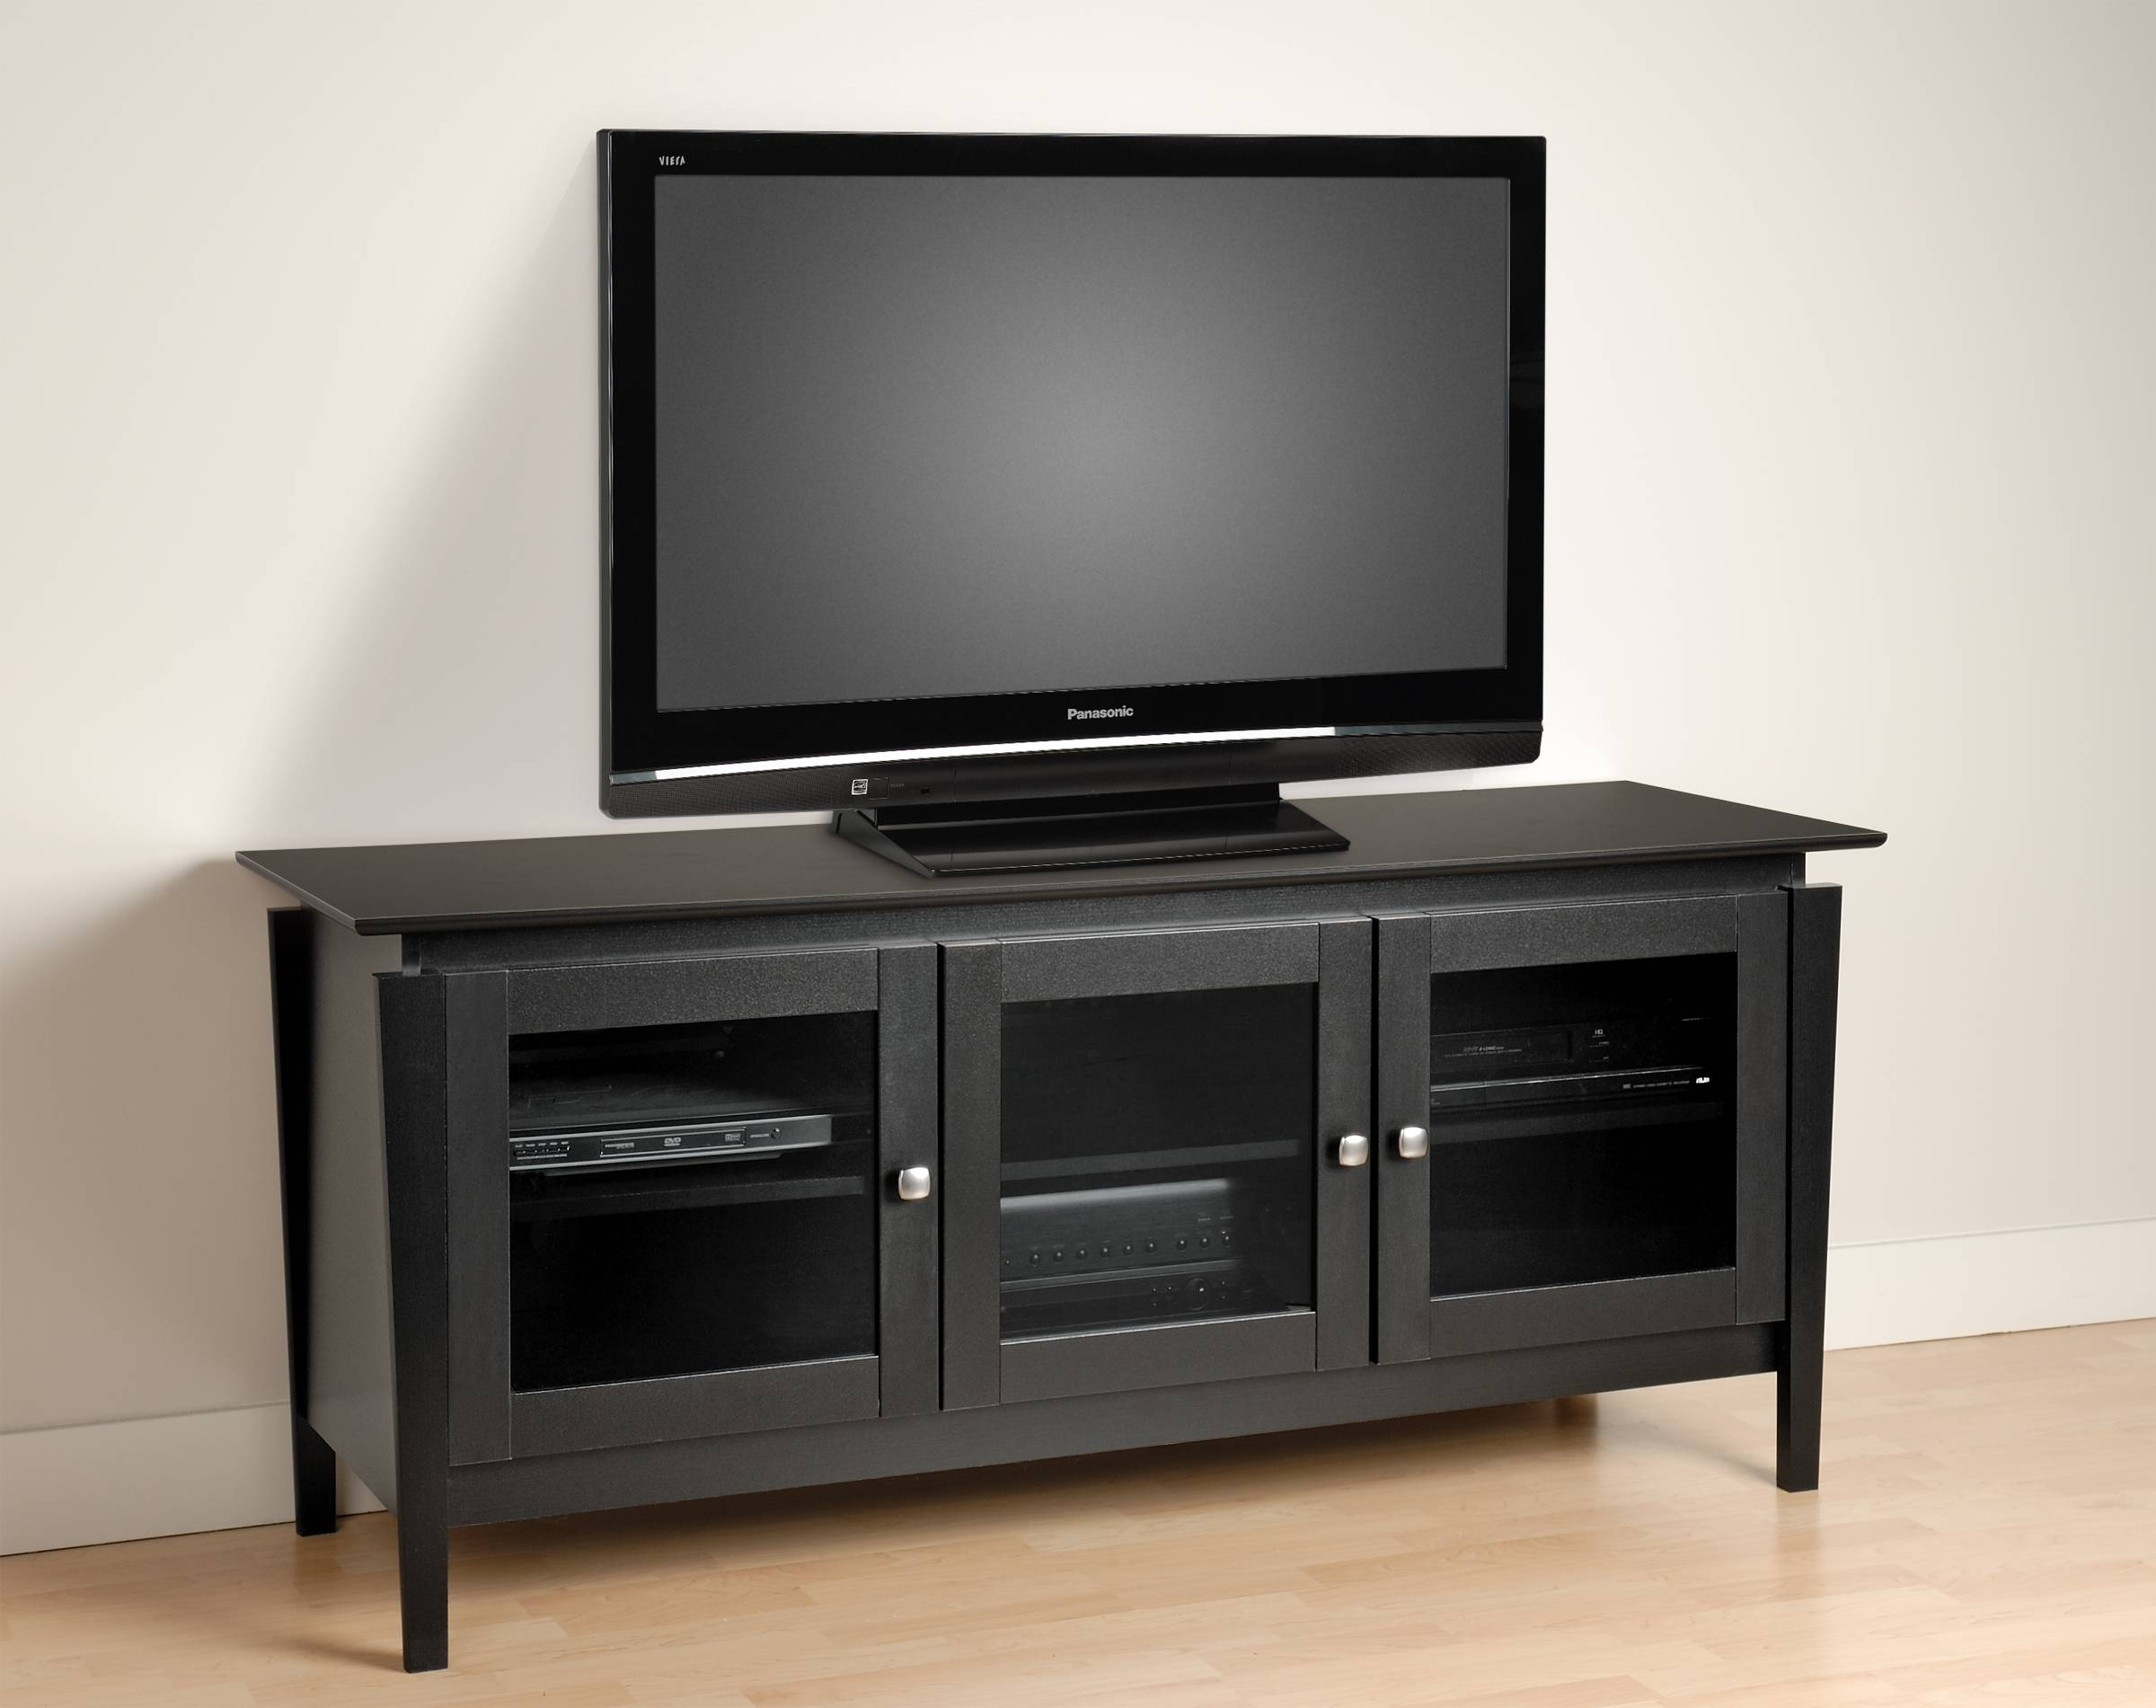 Black Wooden Tv Cabinets With Glass Doors And Steel Knob On Short inside Corner Tv Cabinets With Glass Doors (Image 2 of 15)